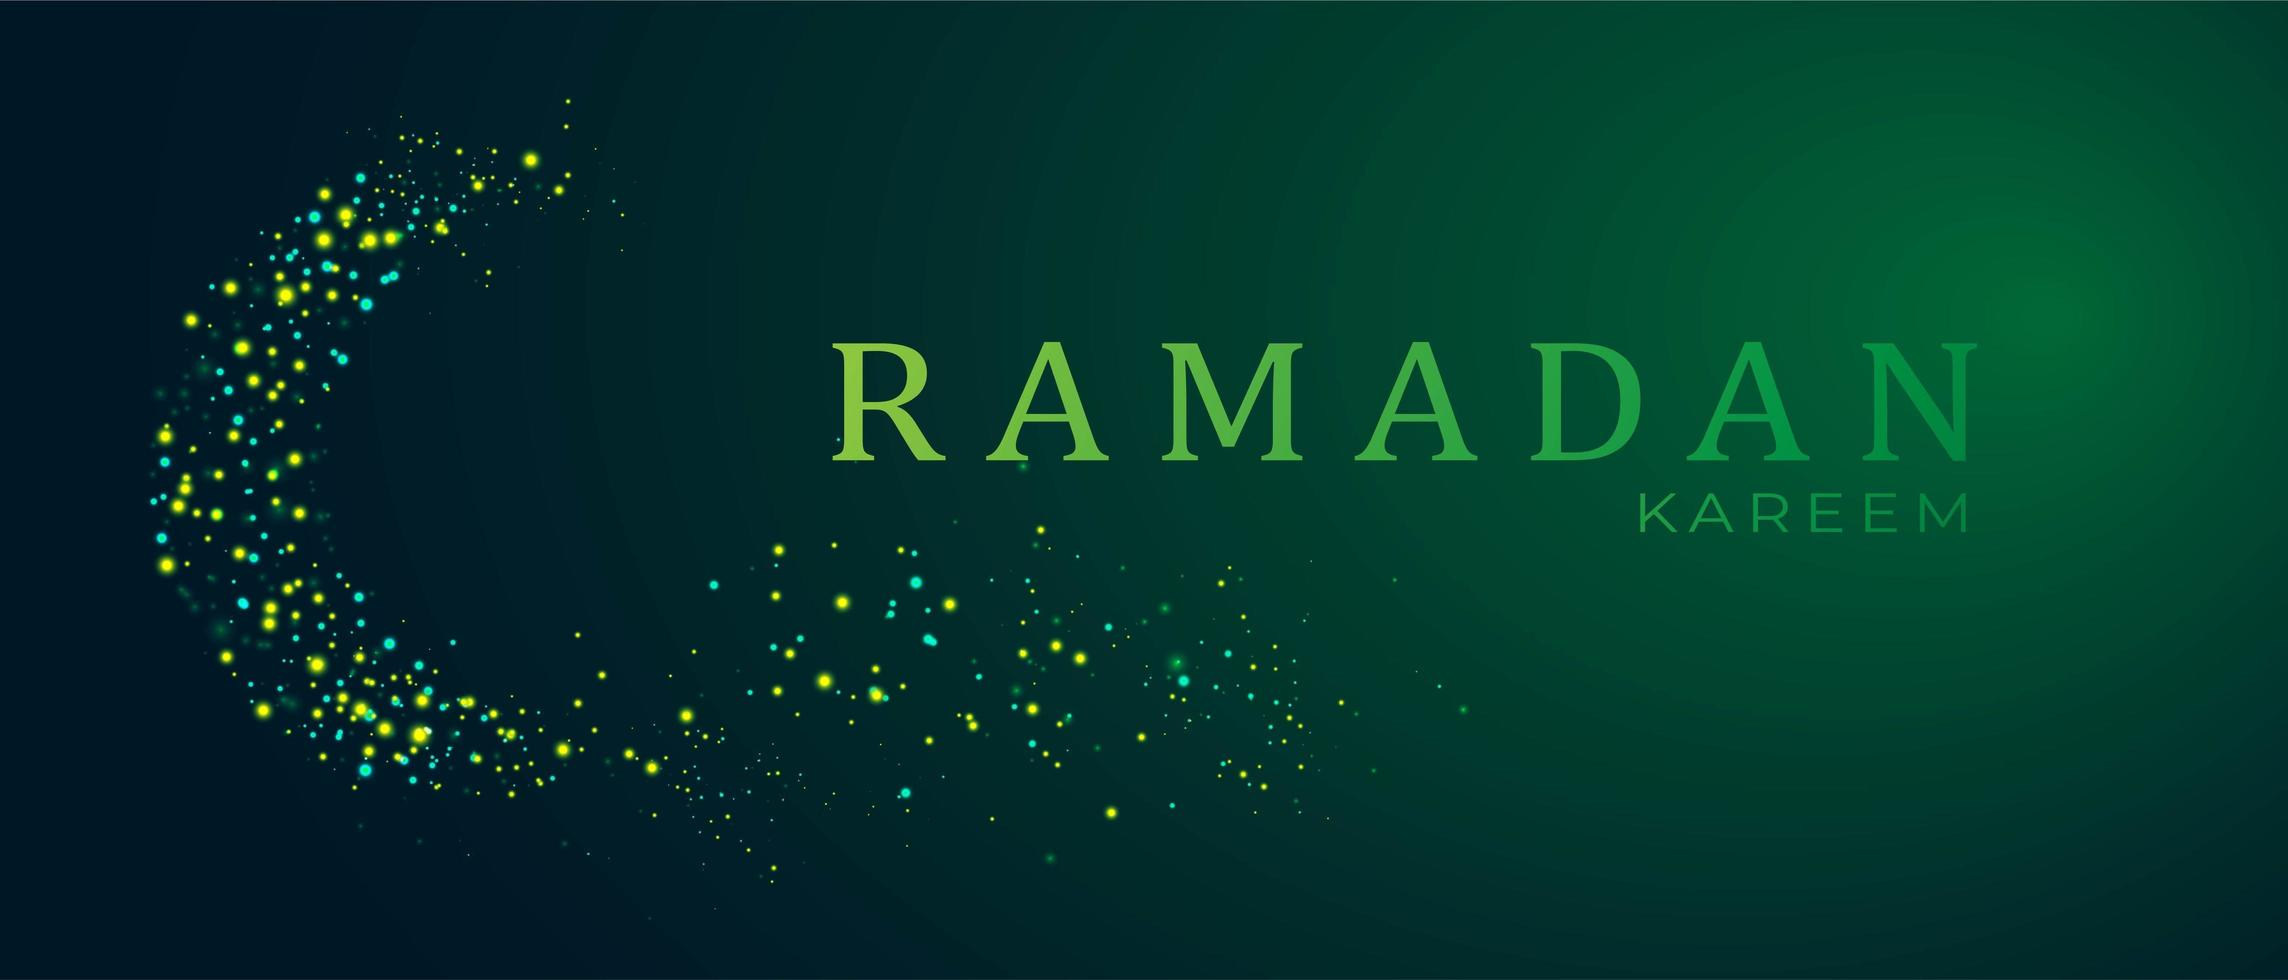 Ramadan kareem background with space for text vector